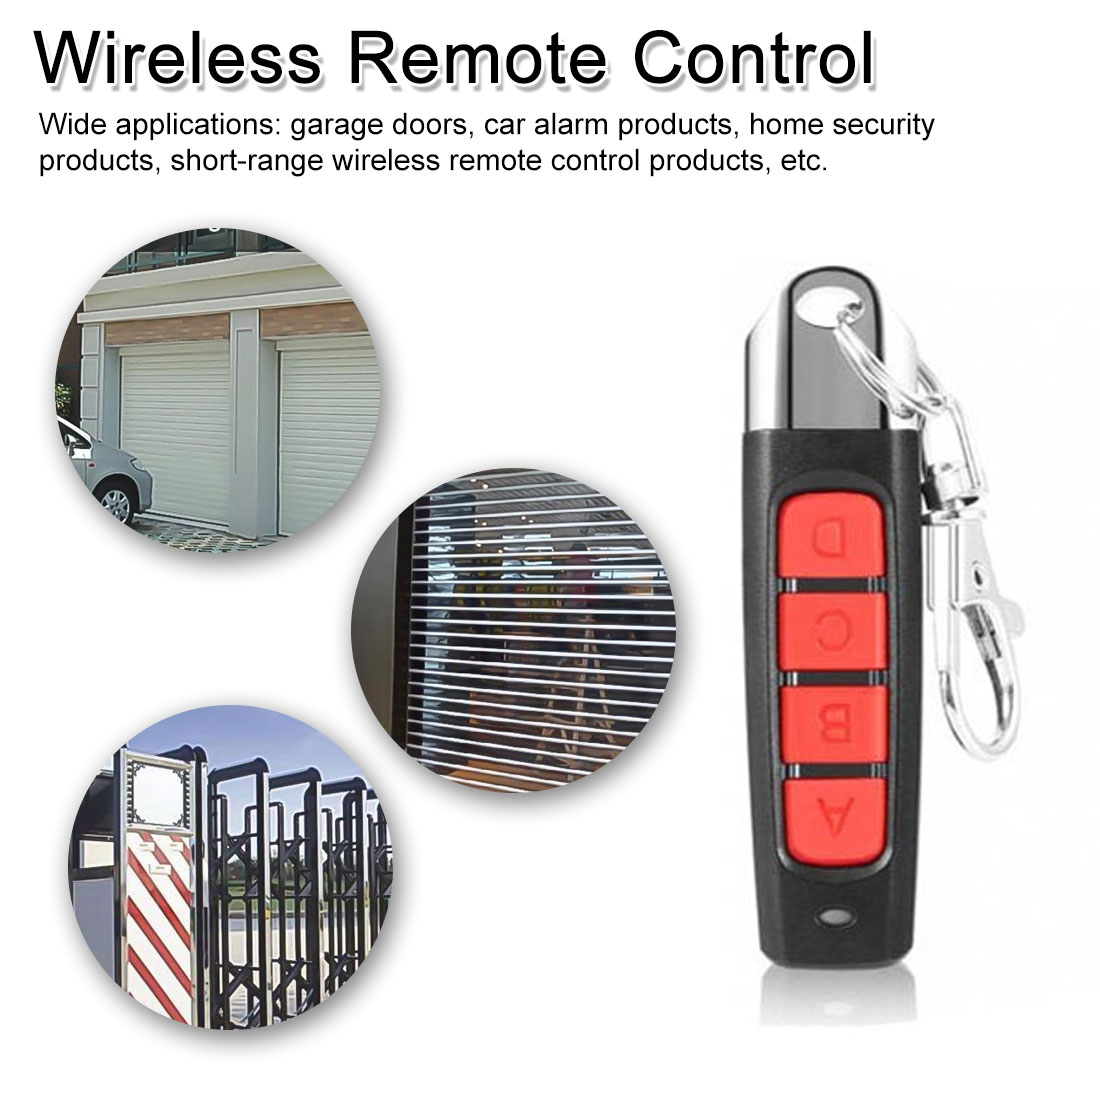 Universal Wireless Remote Control 433 Mhz Remote Control Garage Gate Door Opener Duplicatorroad Gate Remote Control Rolling Door